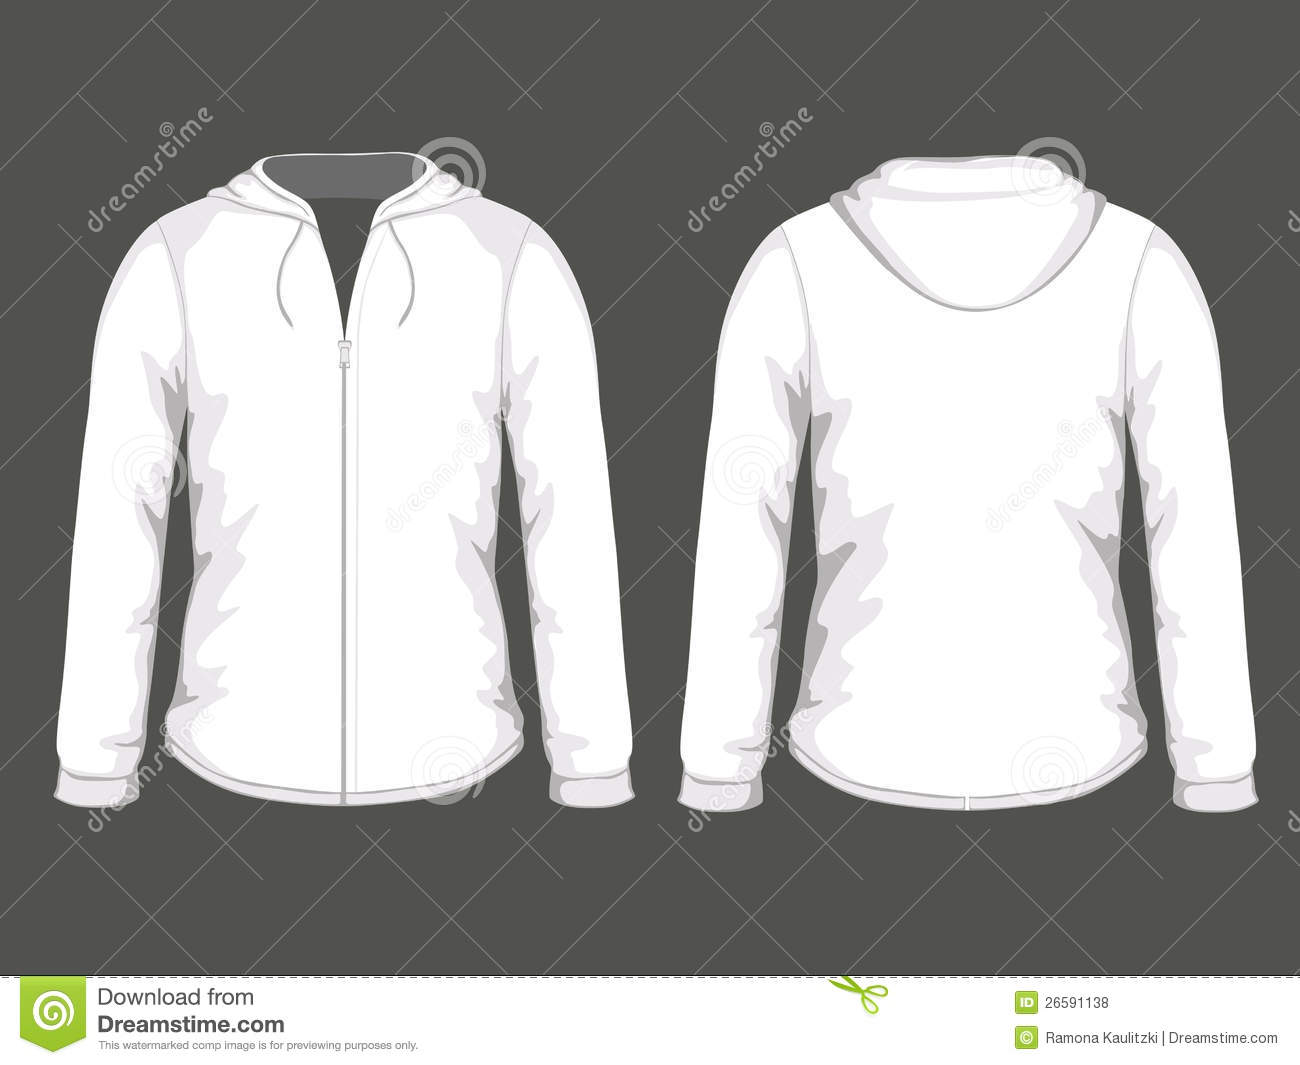 Women Hooded Sweatshirt Template Stock Vector - Image: 74914772